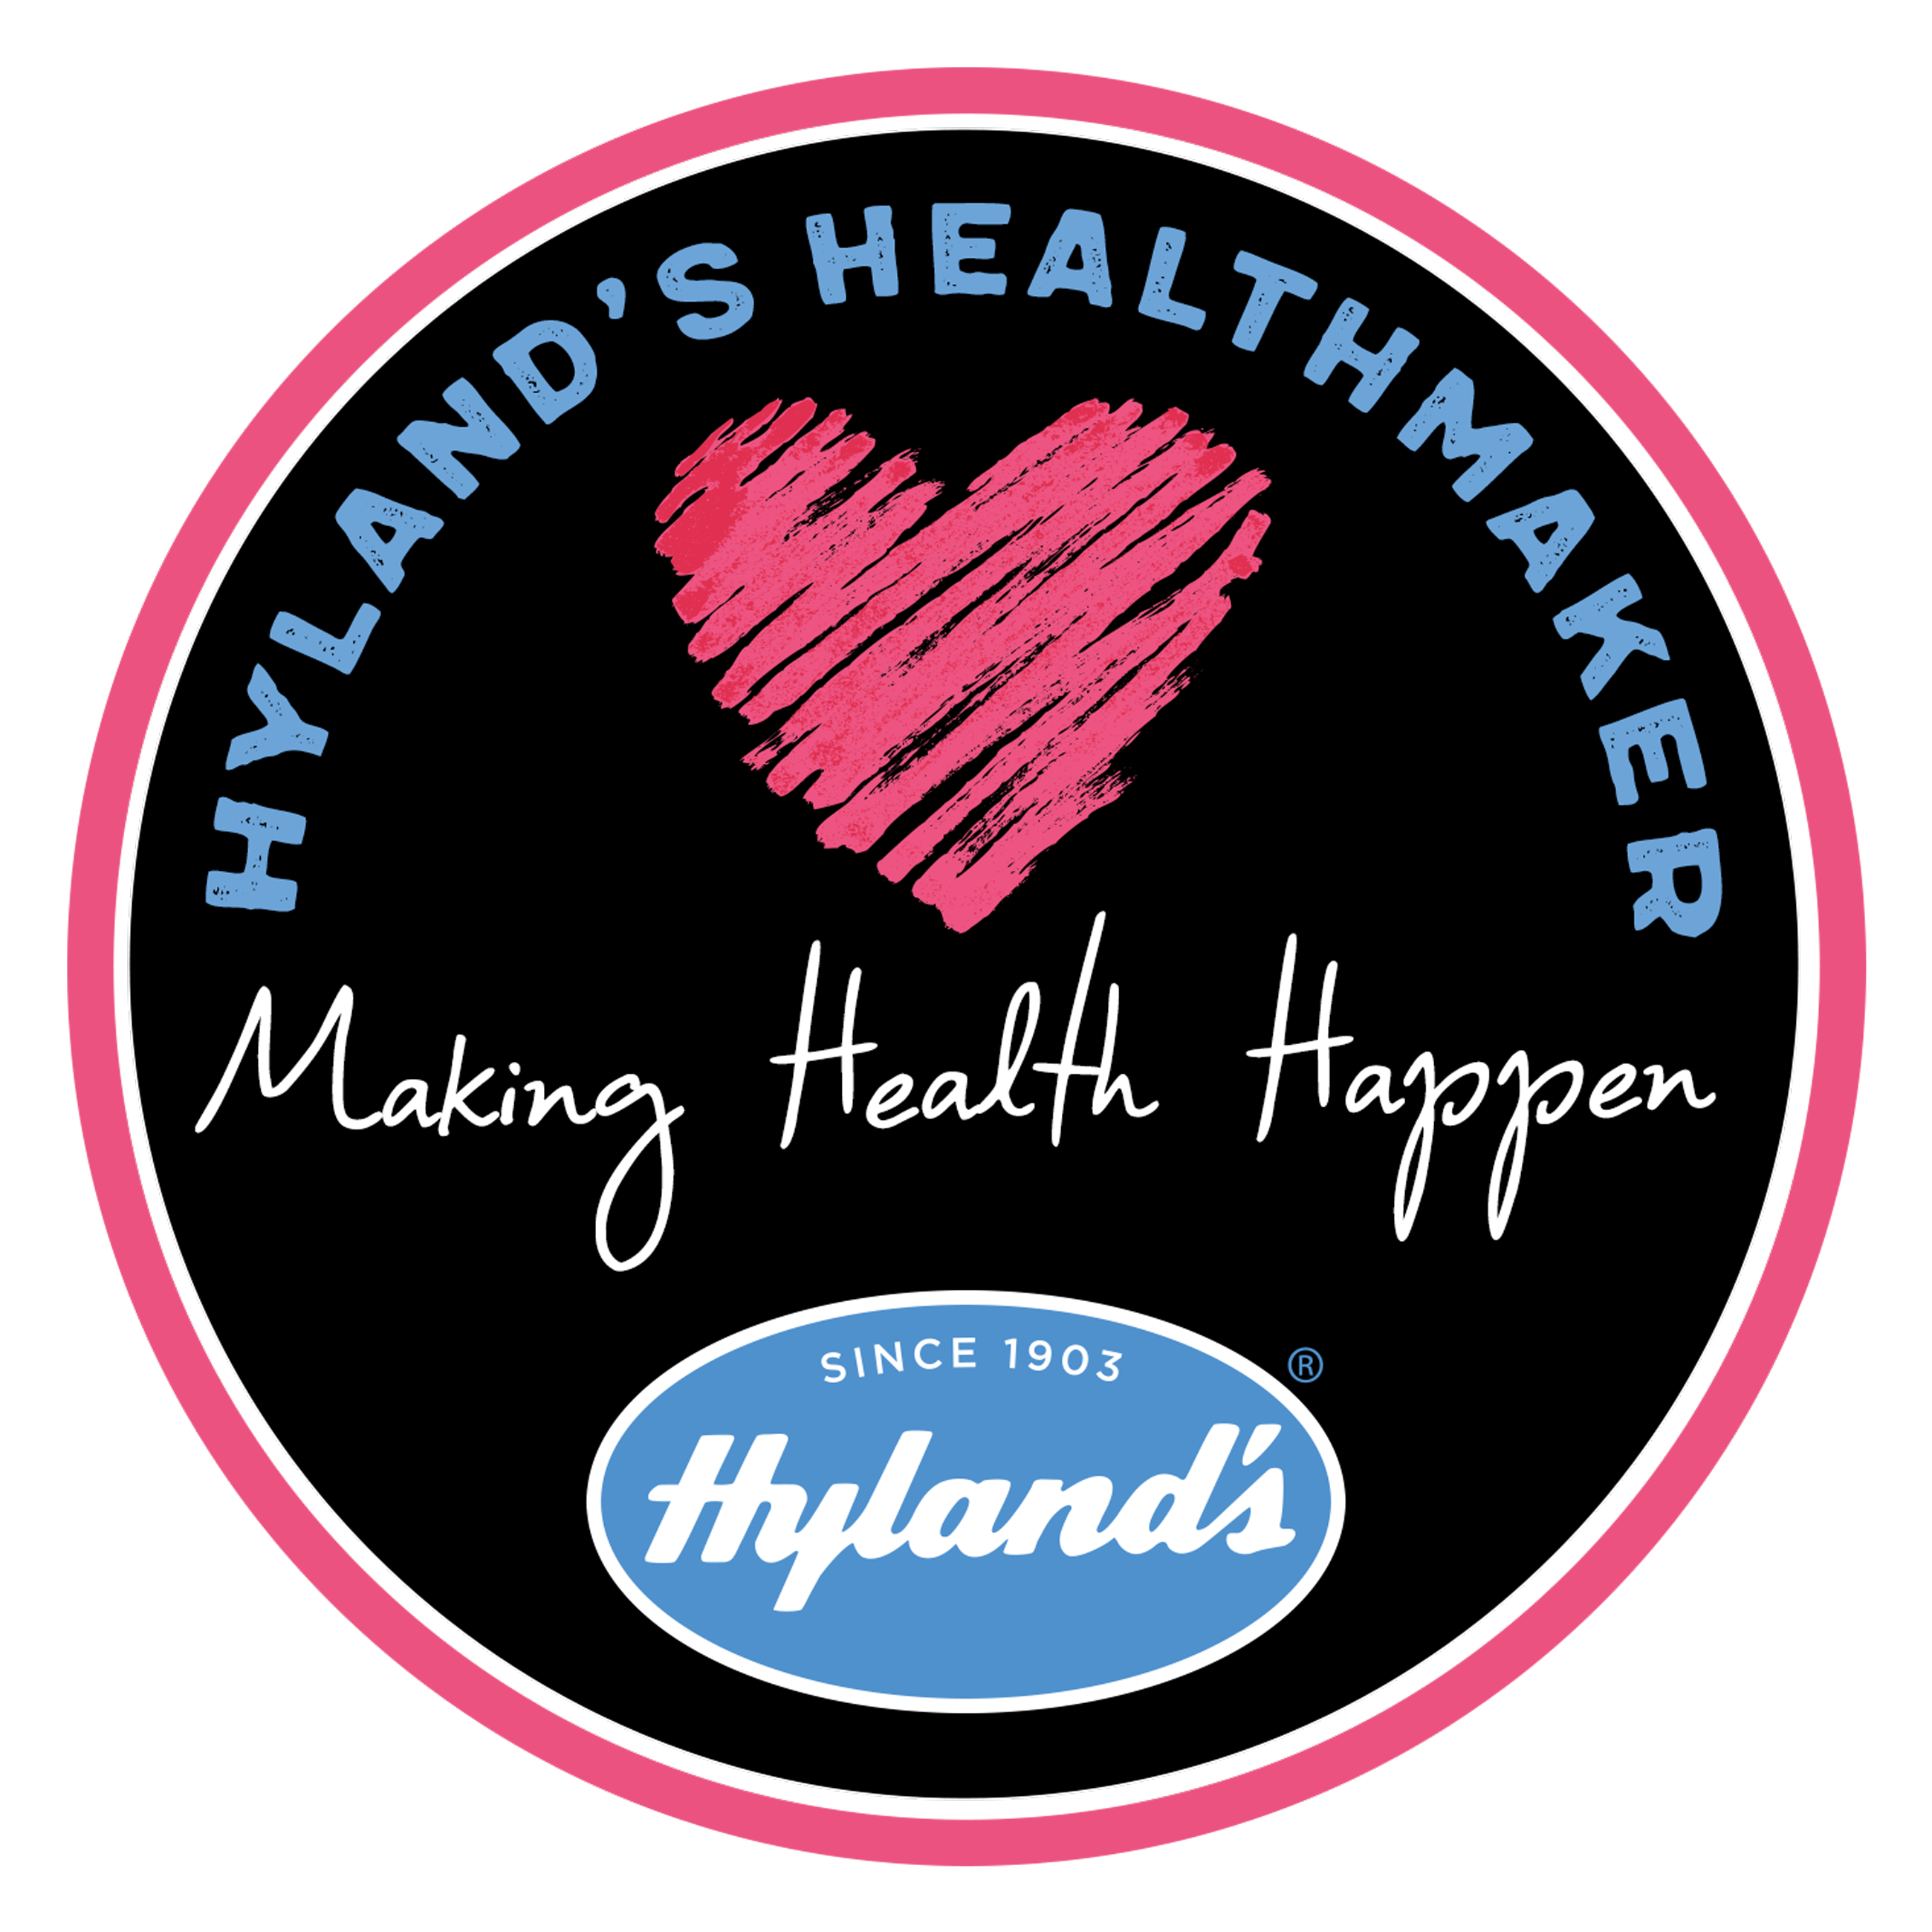 Introducing Hyland's HealthMakers + a Giveaway ($150+ value)